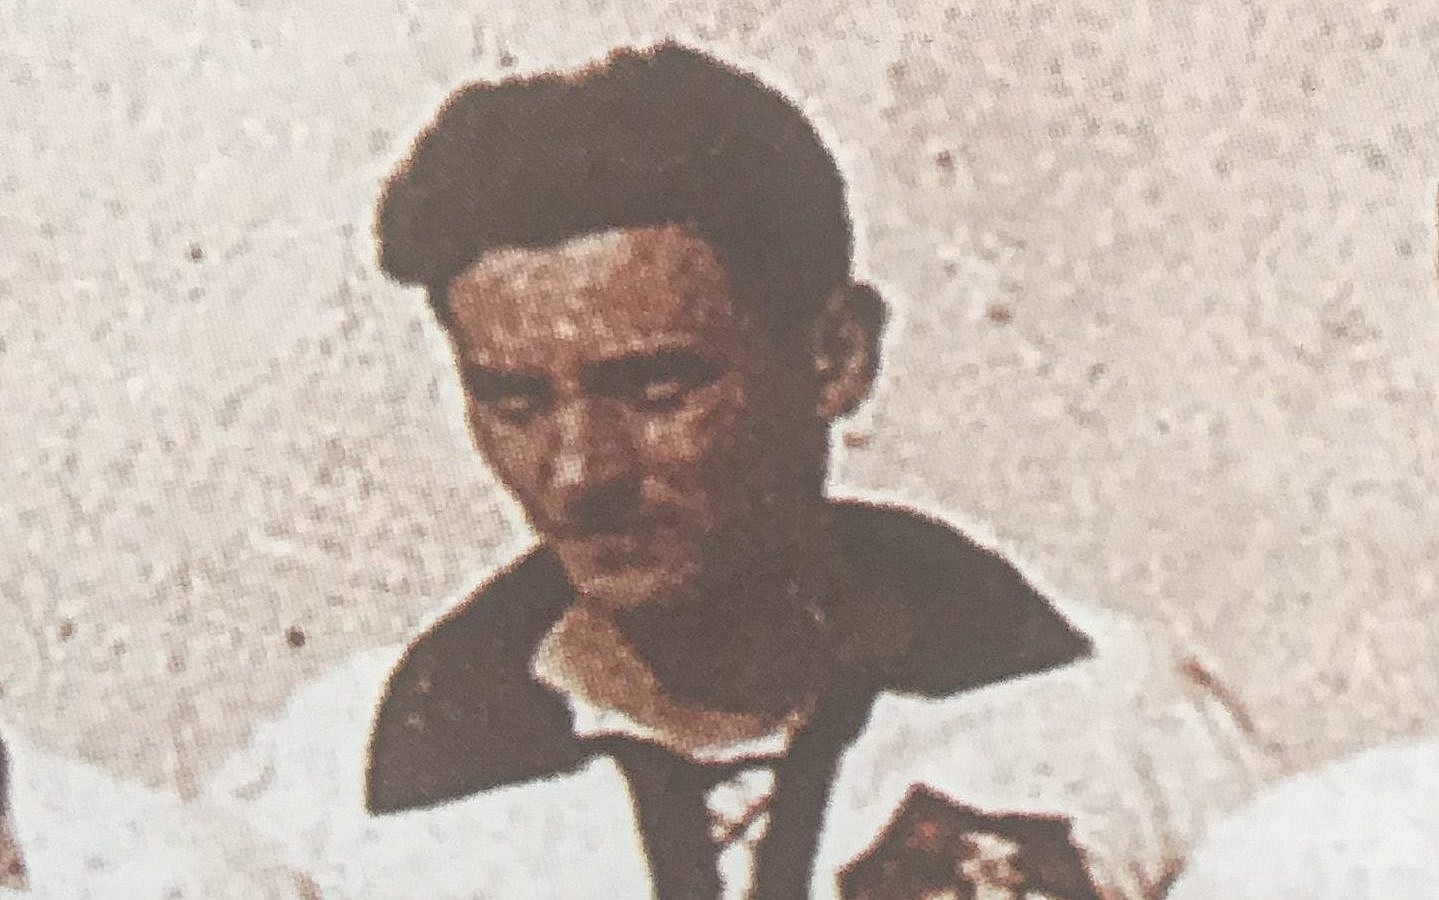 Shoah victim who was Poland's first goalscorer is honoured